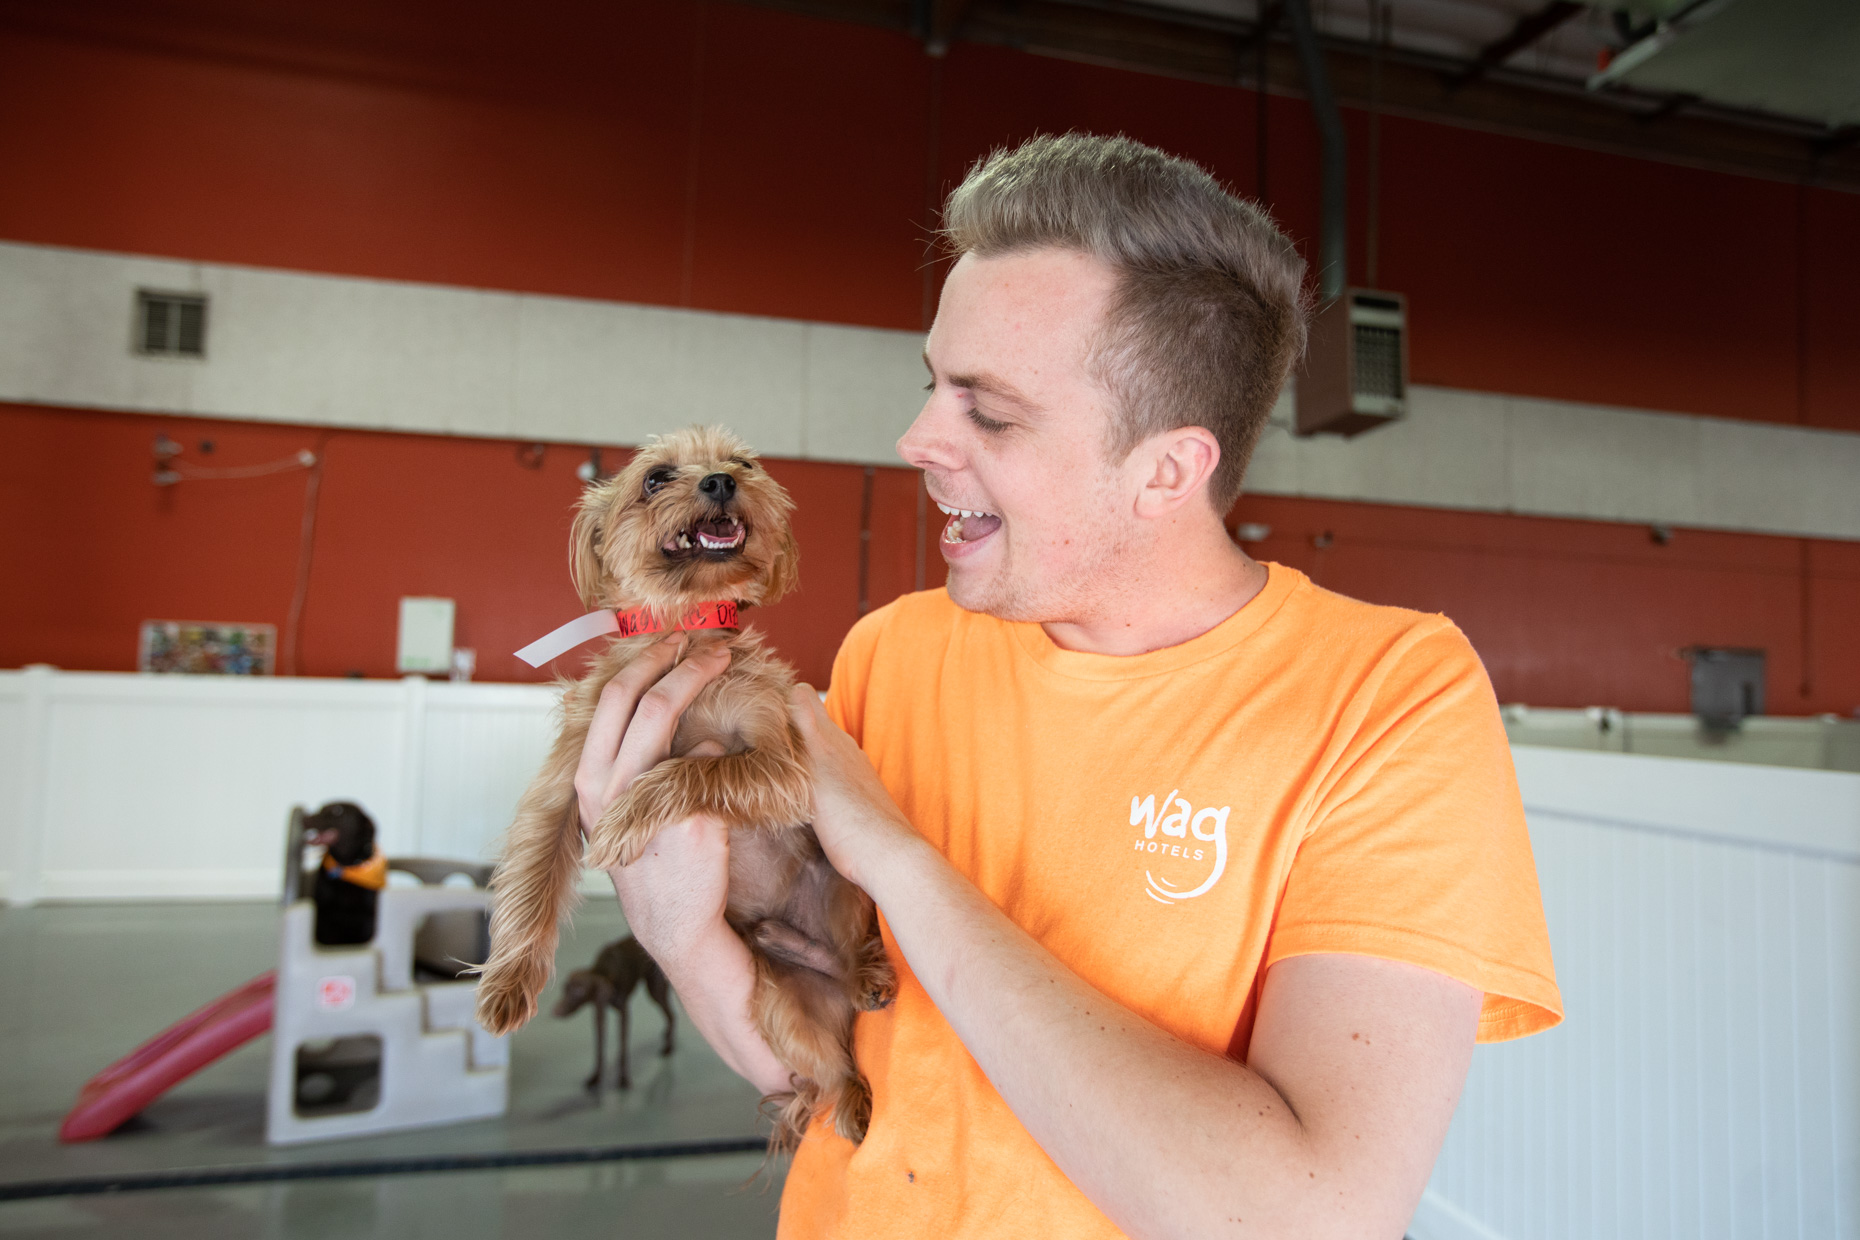 Pet Advertising Photography | Man Holding Dog at Pet Daycare